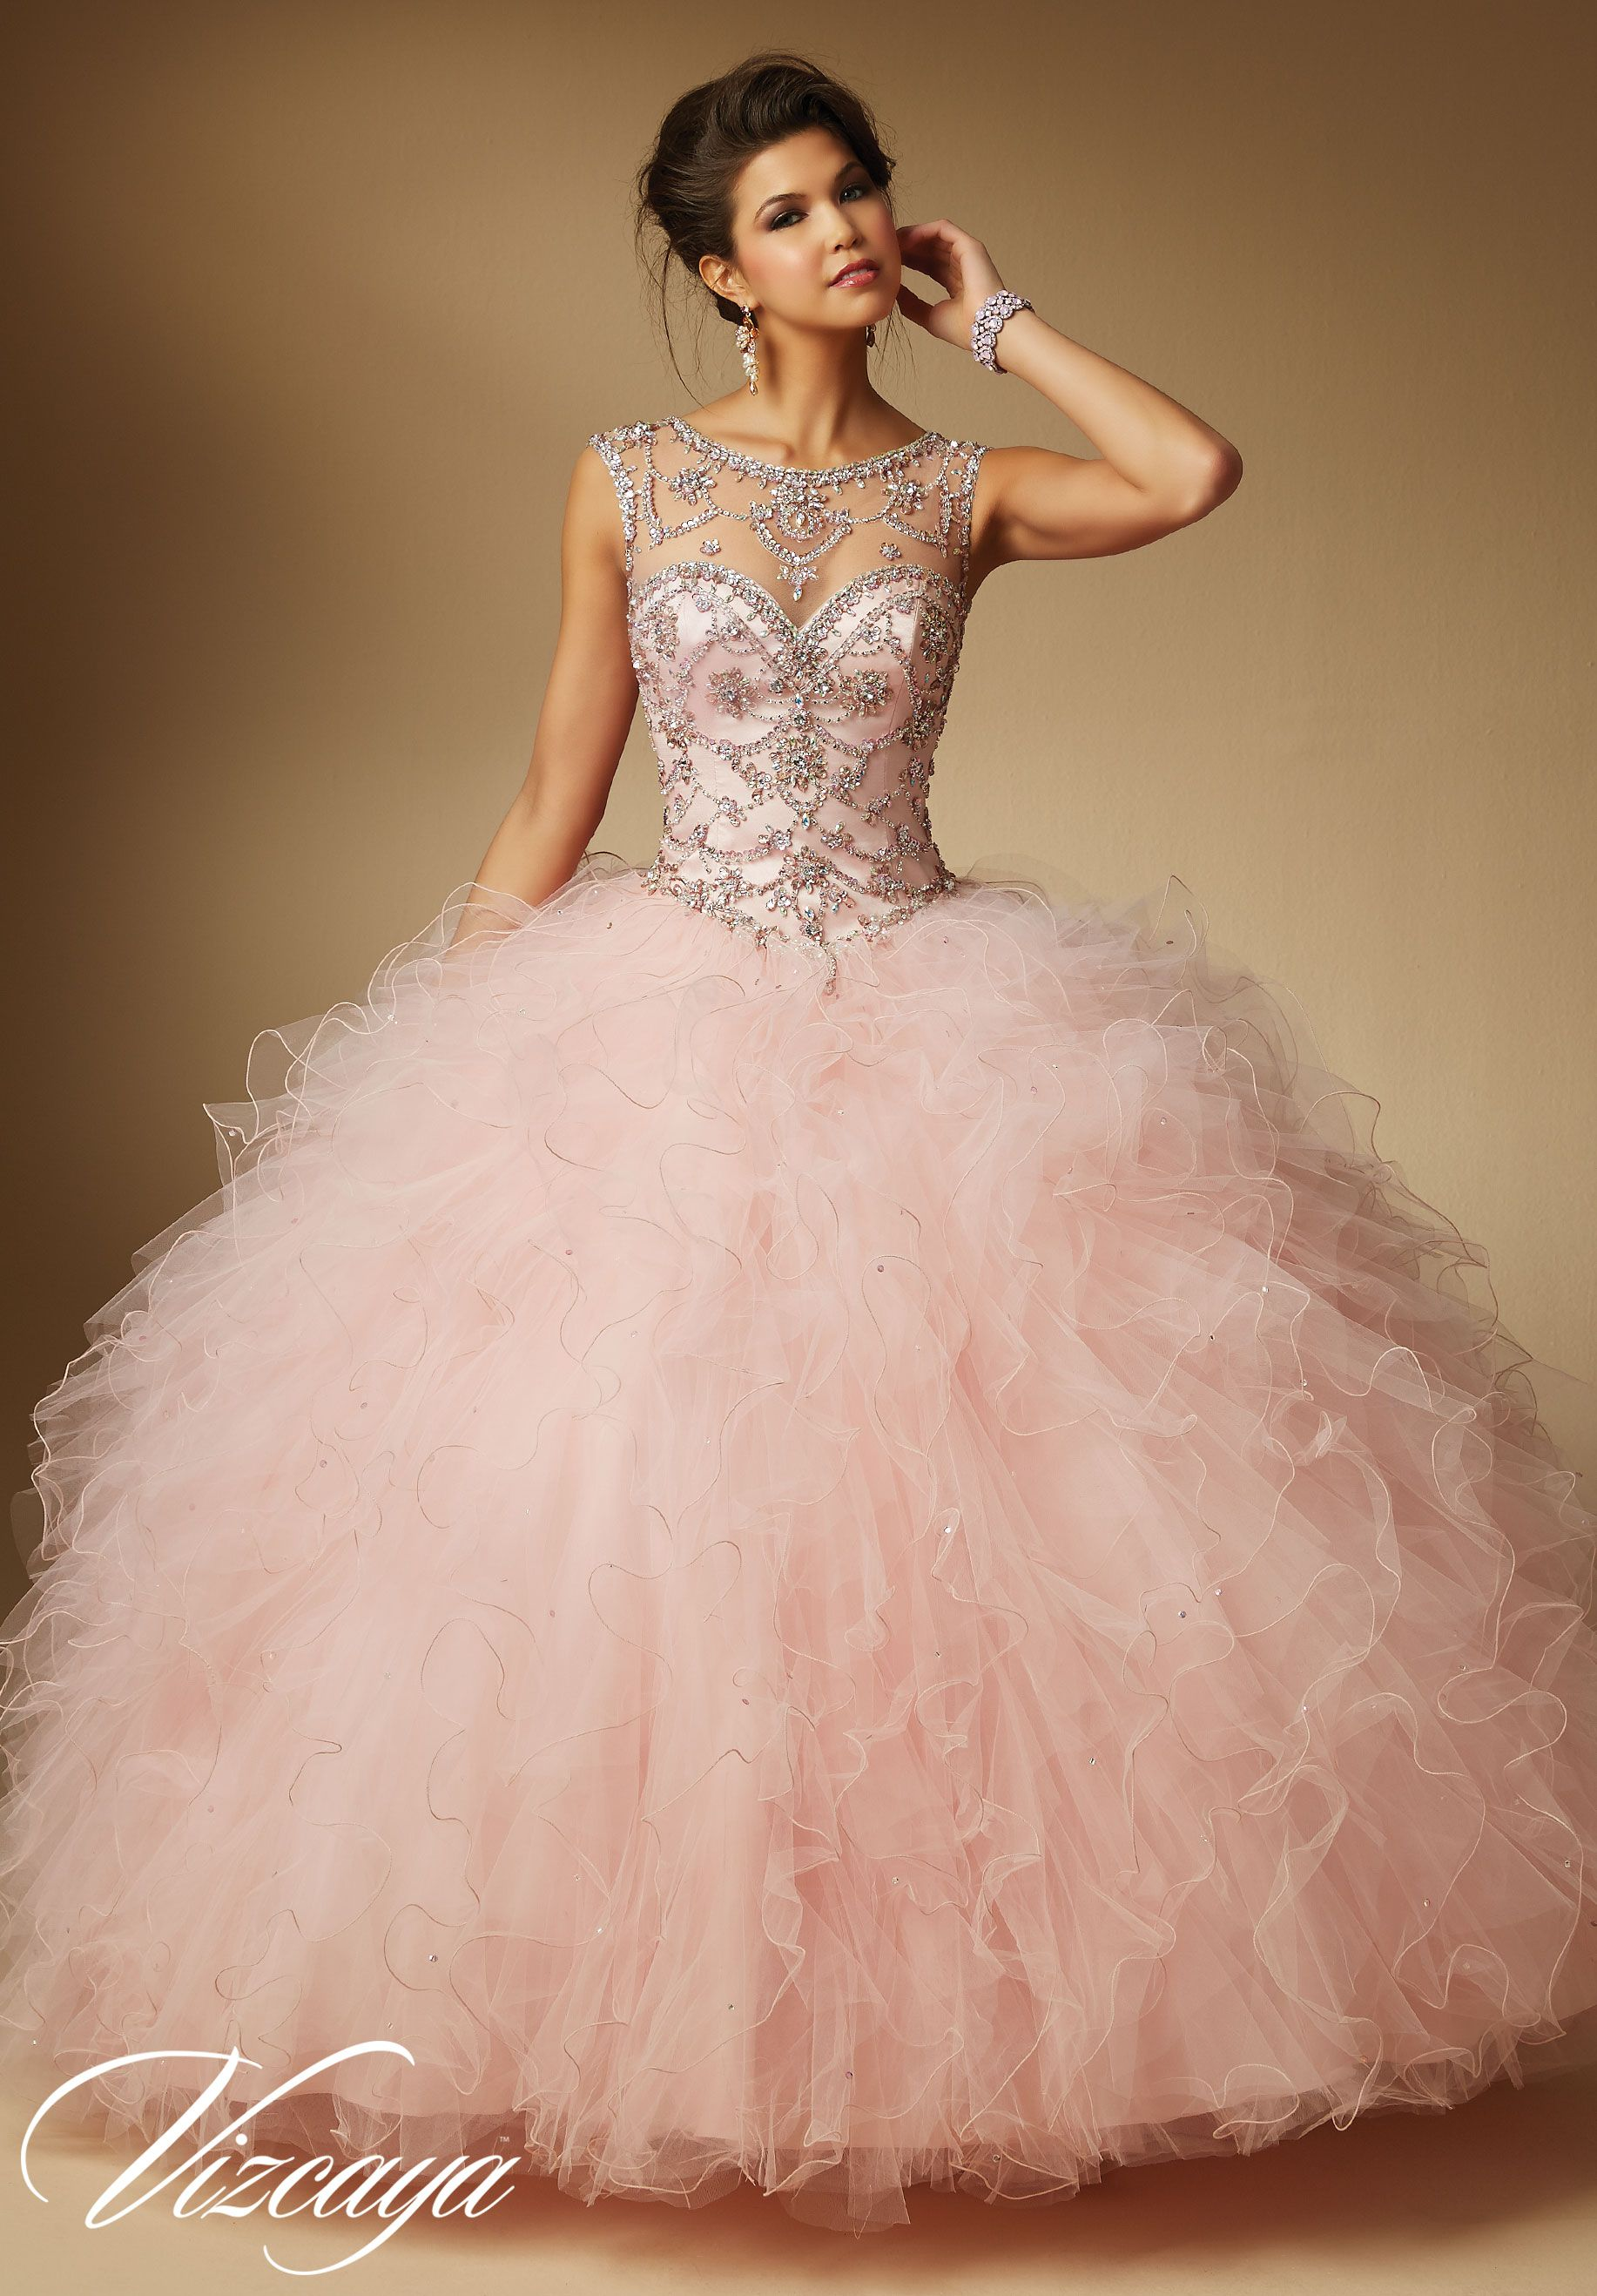 Quinceanera dresses by Vizcaya Jeweled Beading on Ruffled Tulle ...